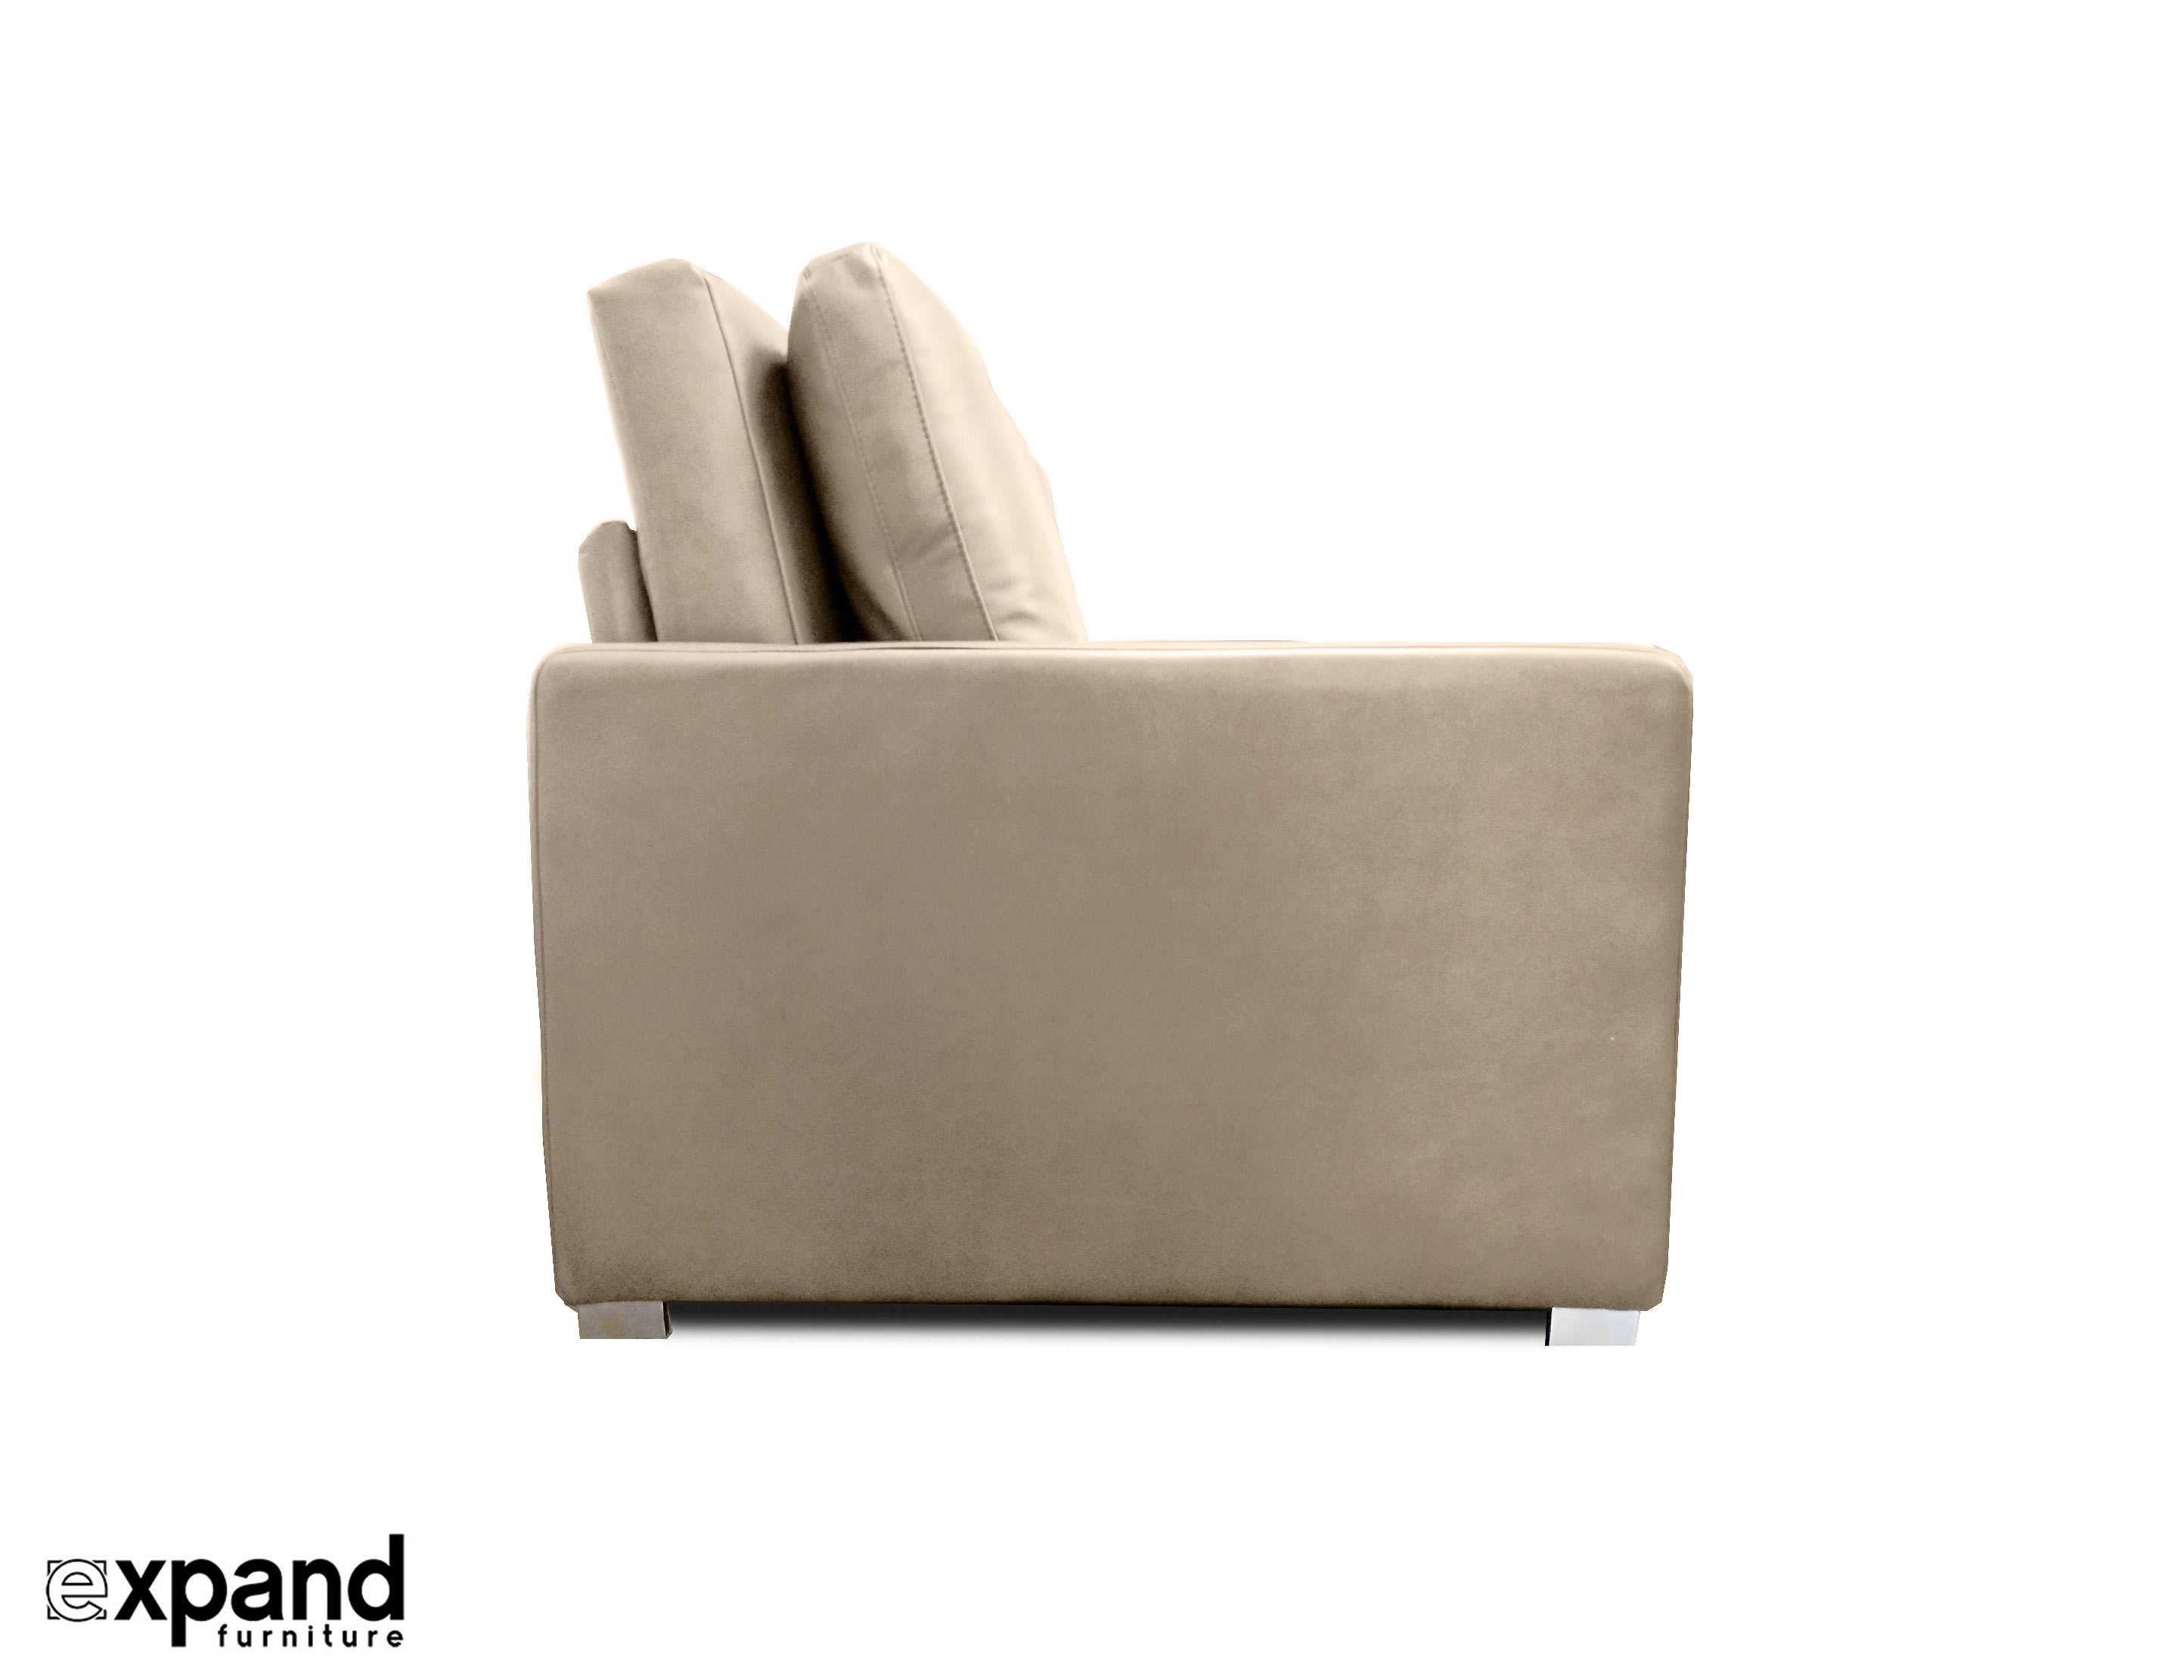 Groovy Harmony Sofa Bed Queen Eco Leather Ncnpc Chair Design For Home Ncnpcorg